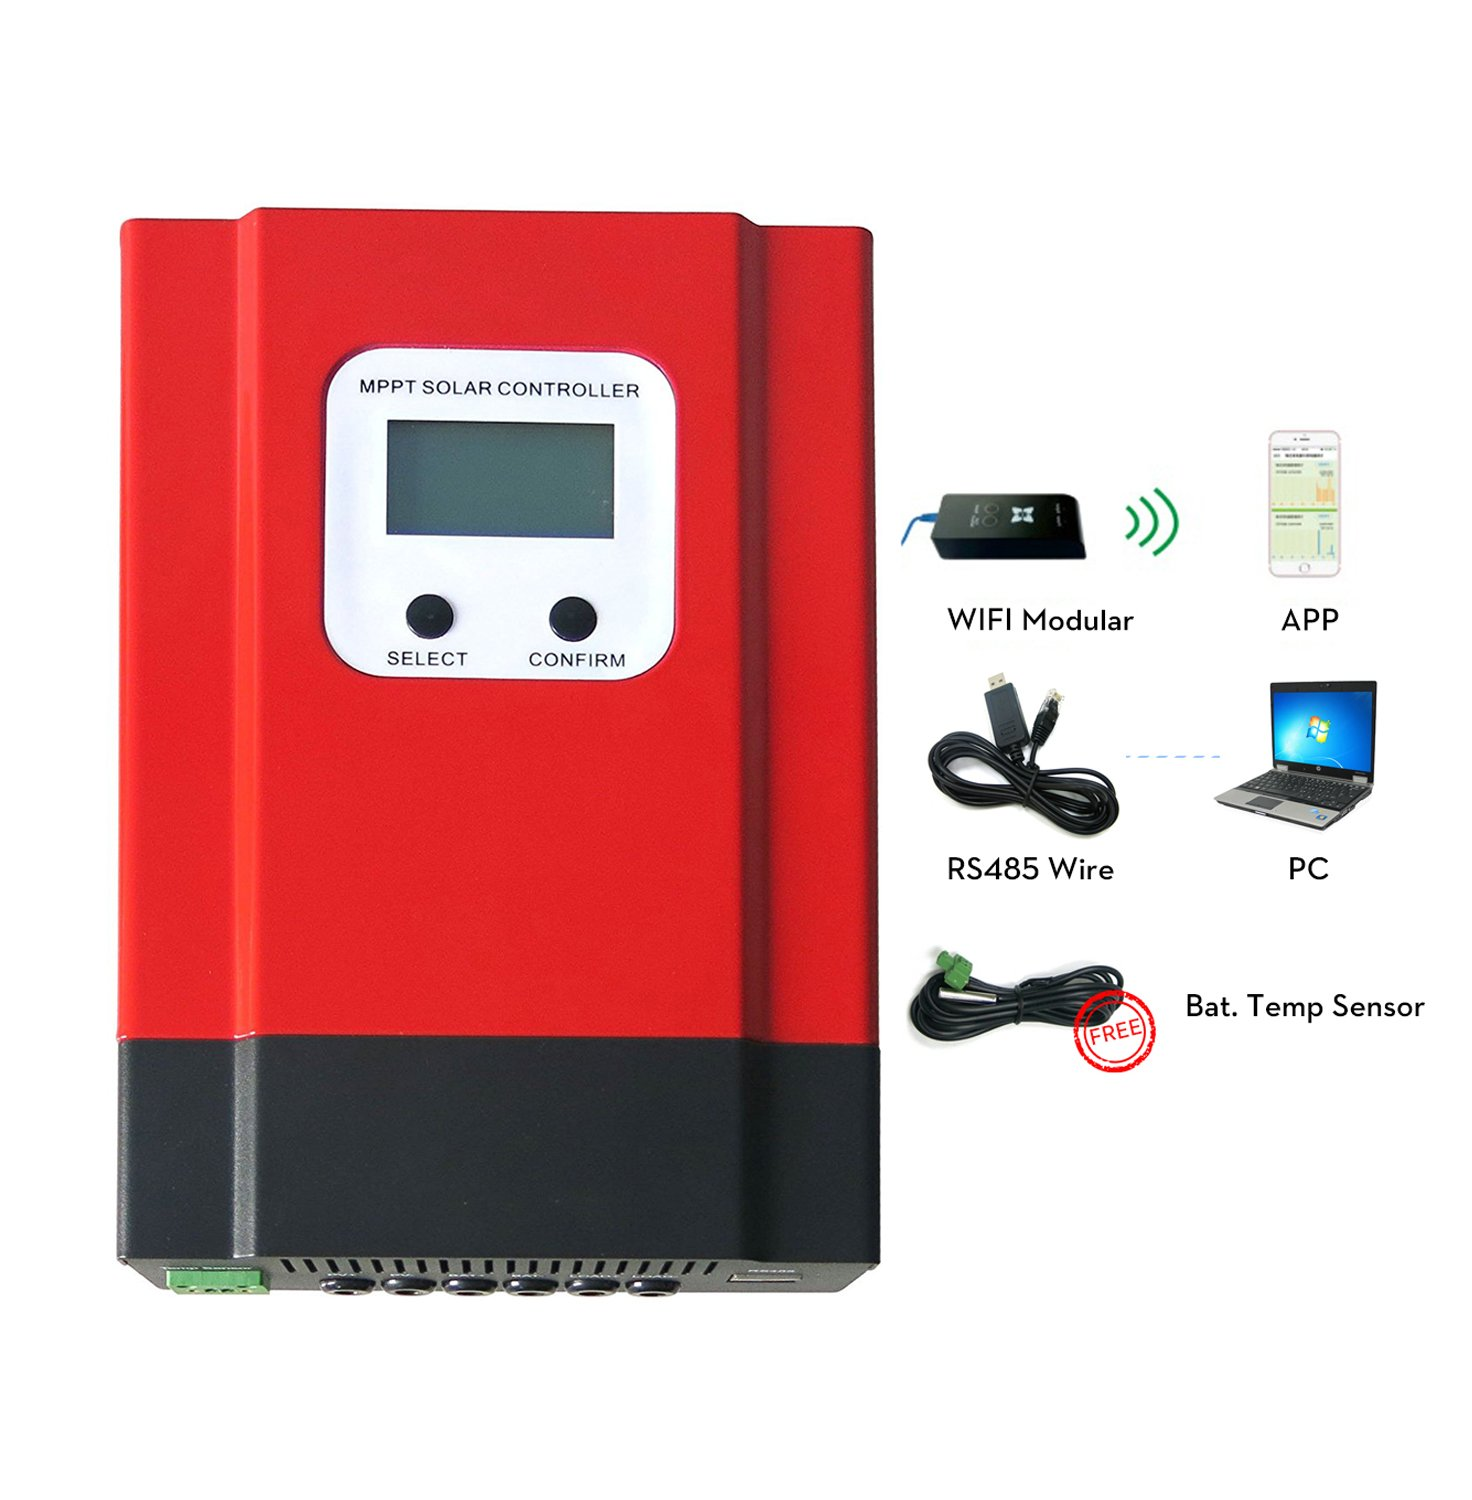 Y&H 60A MPPT Solar Charge Controller 48V/36V/24V/12V Solar Panel for Flooded/Sealed lead acid/Gel/Lithium Battery Charge Regulator Support off grid Solar System Max 150VDC Input